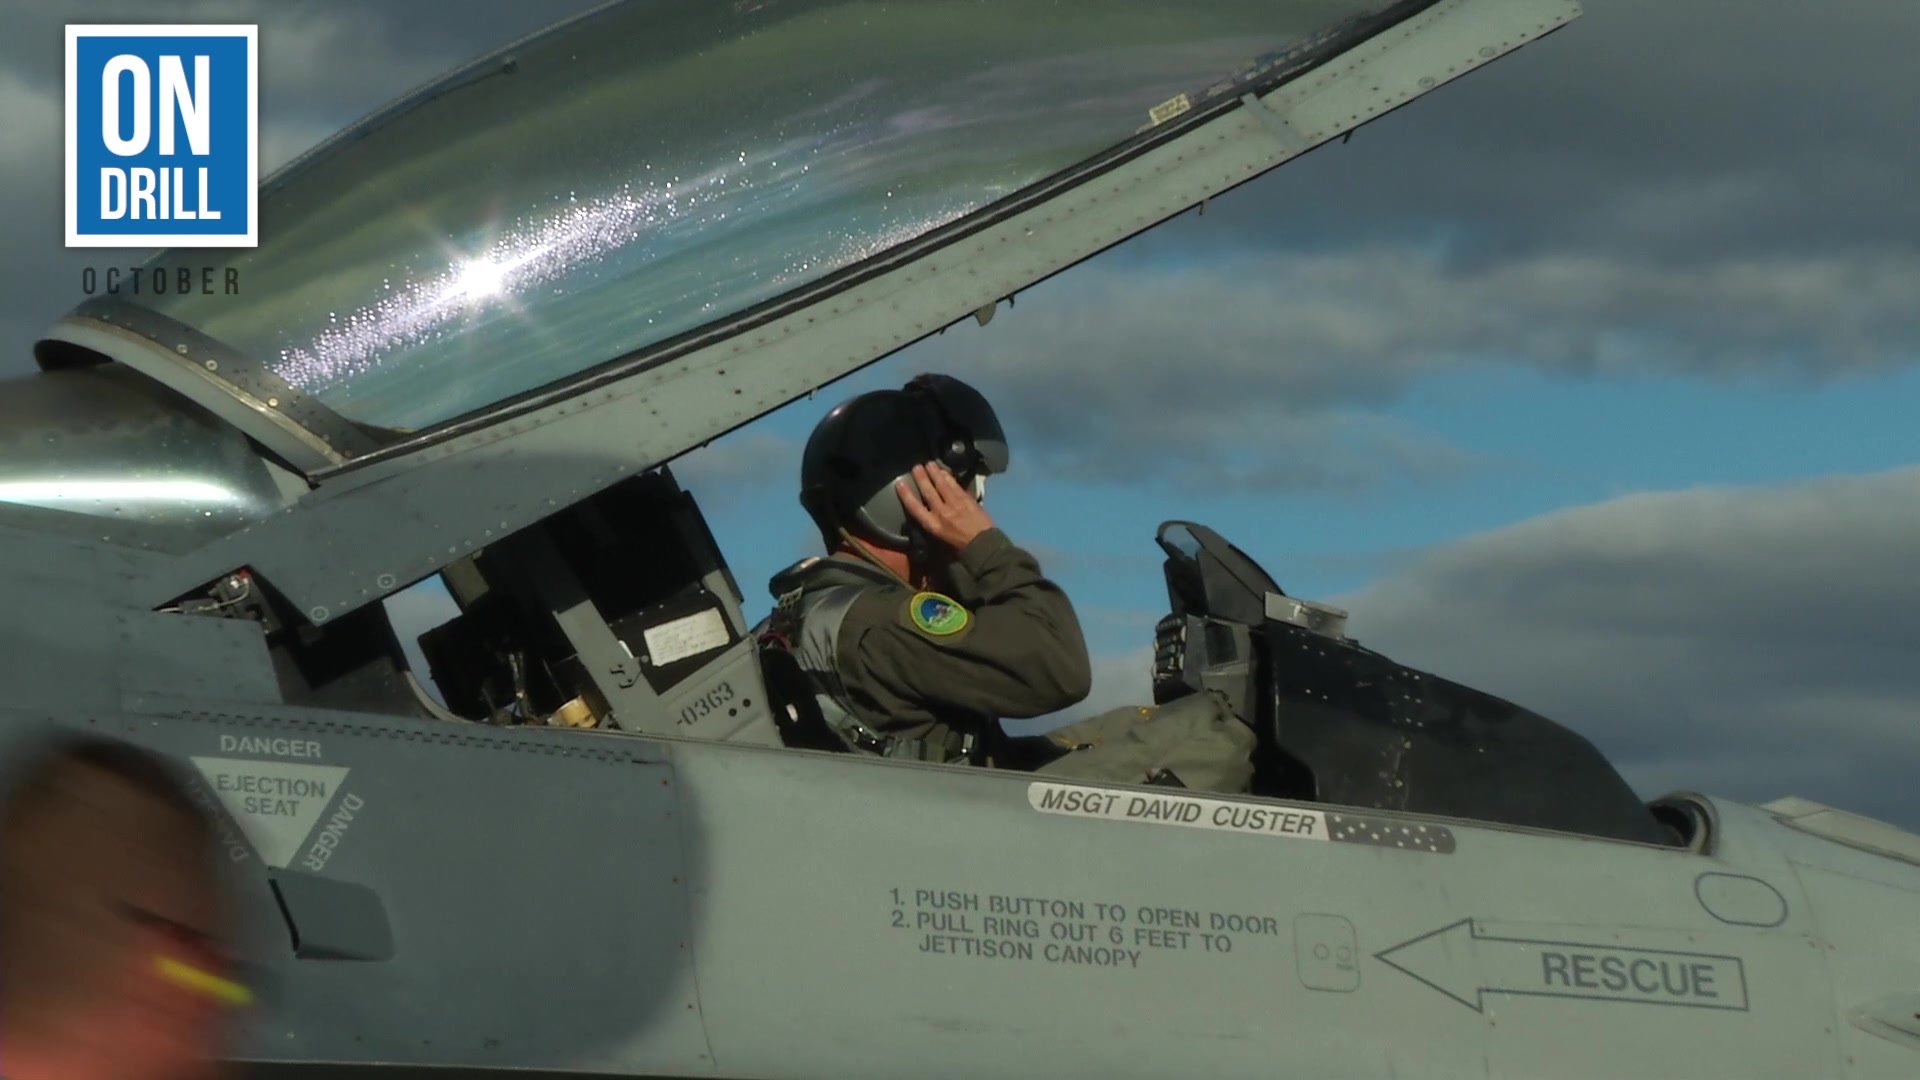 """Check out the October edition of our news series called """"On Drill."""" It provides highlights of what the 158th Fighter Wing, Vermont Air National Guard accomplished over a drill weekend."""